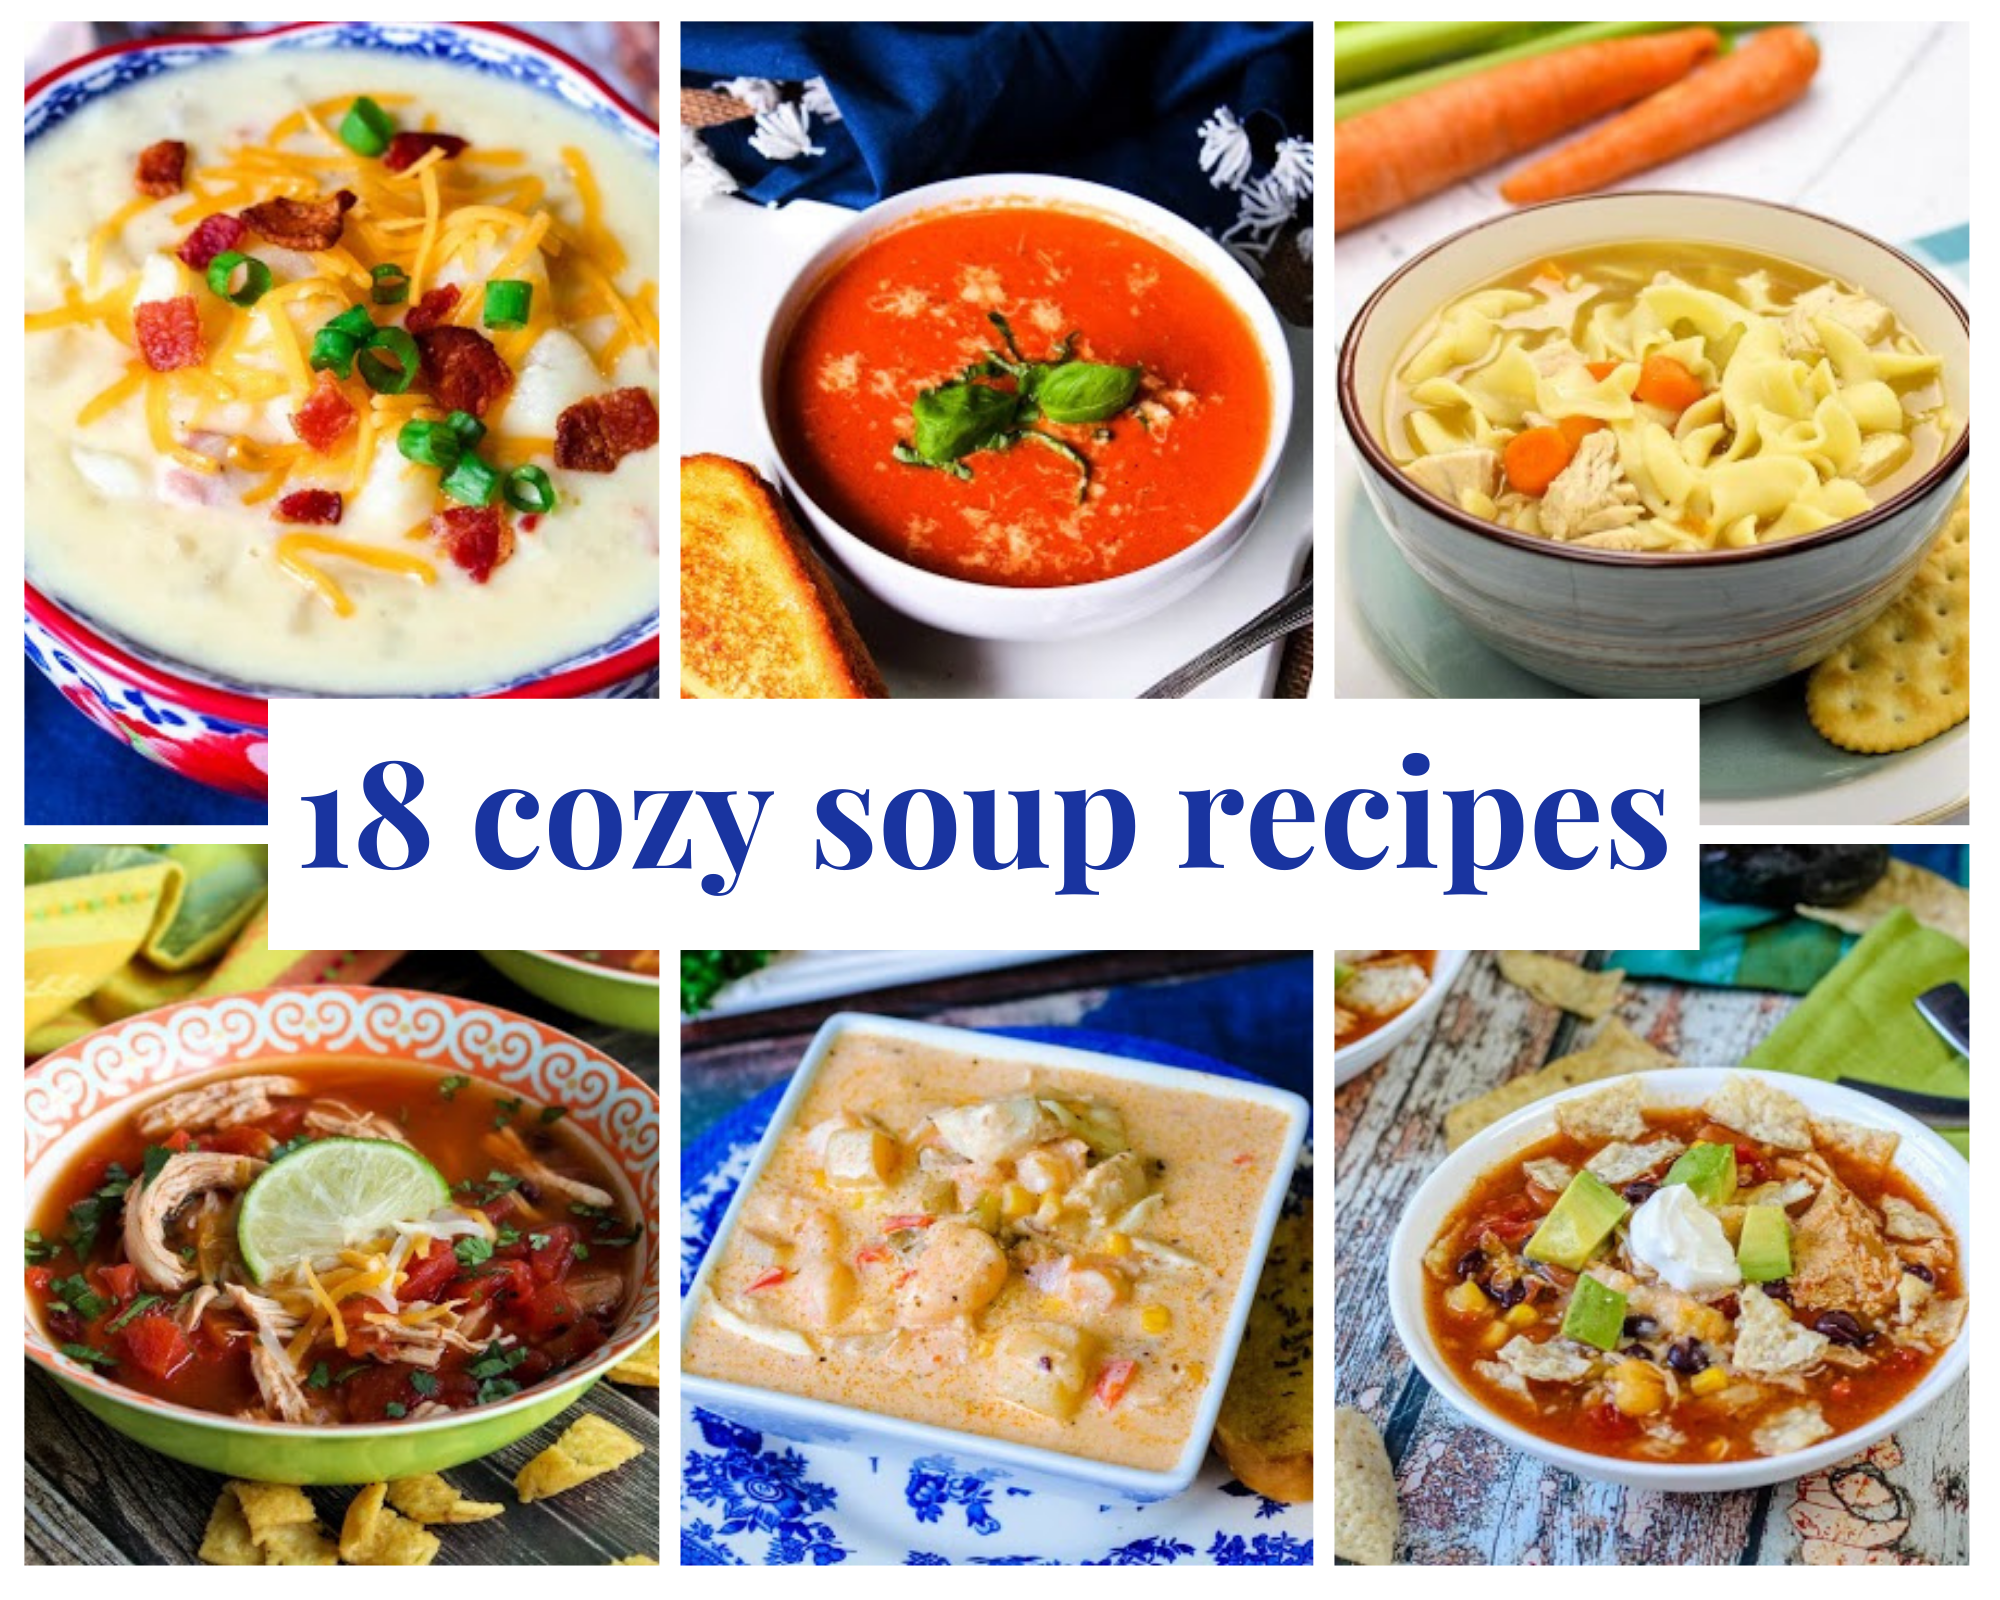 bowls of homemade soups